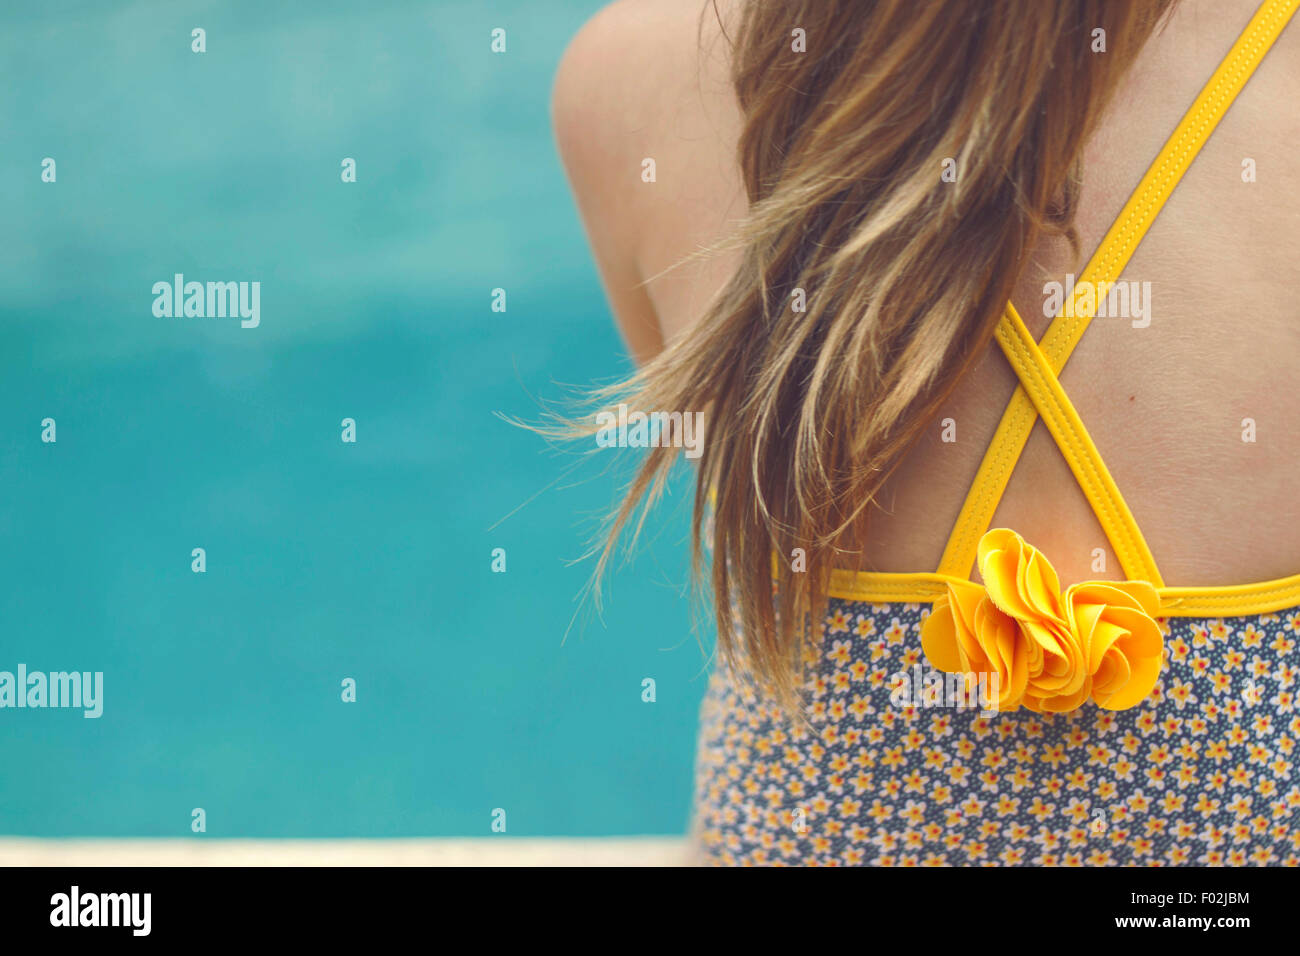 Rear view of a girl in a swimsuit sitting by a swimming pool - Stock Image